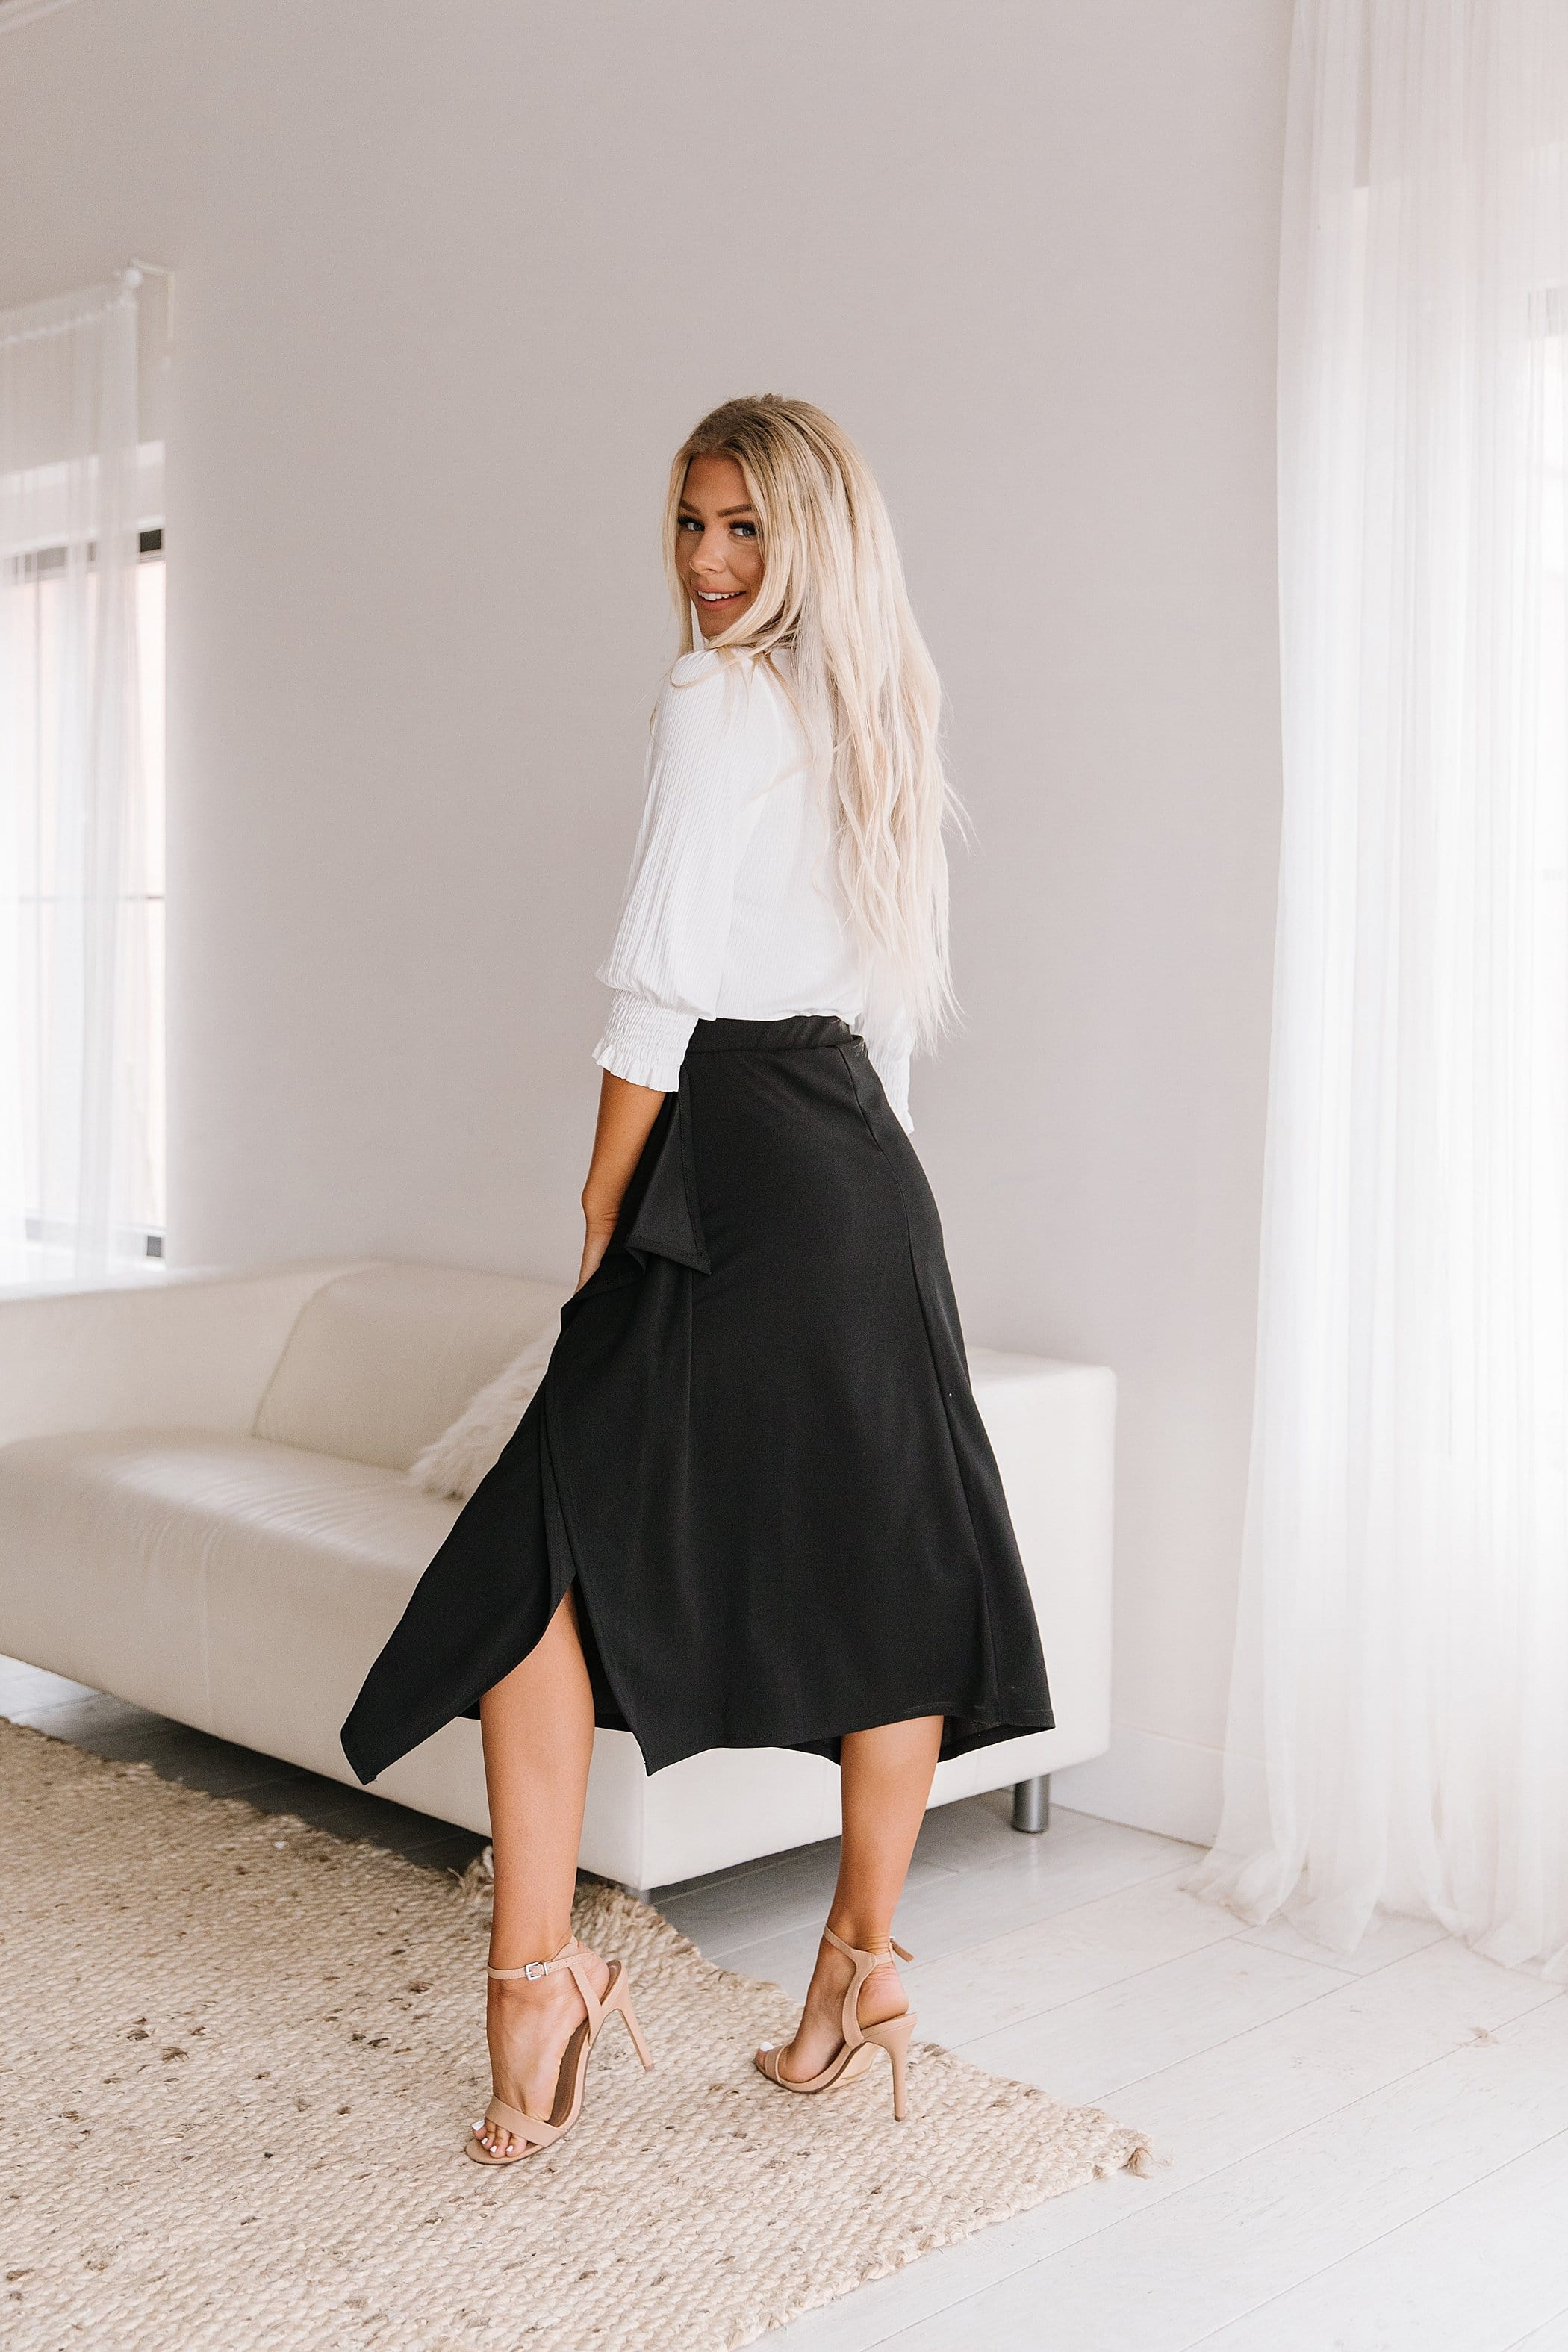 The Frida Ruffle Pencil Skirt in Black